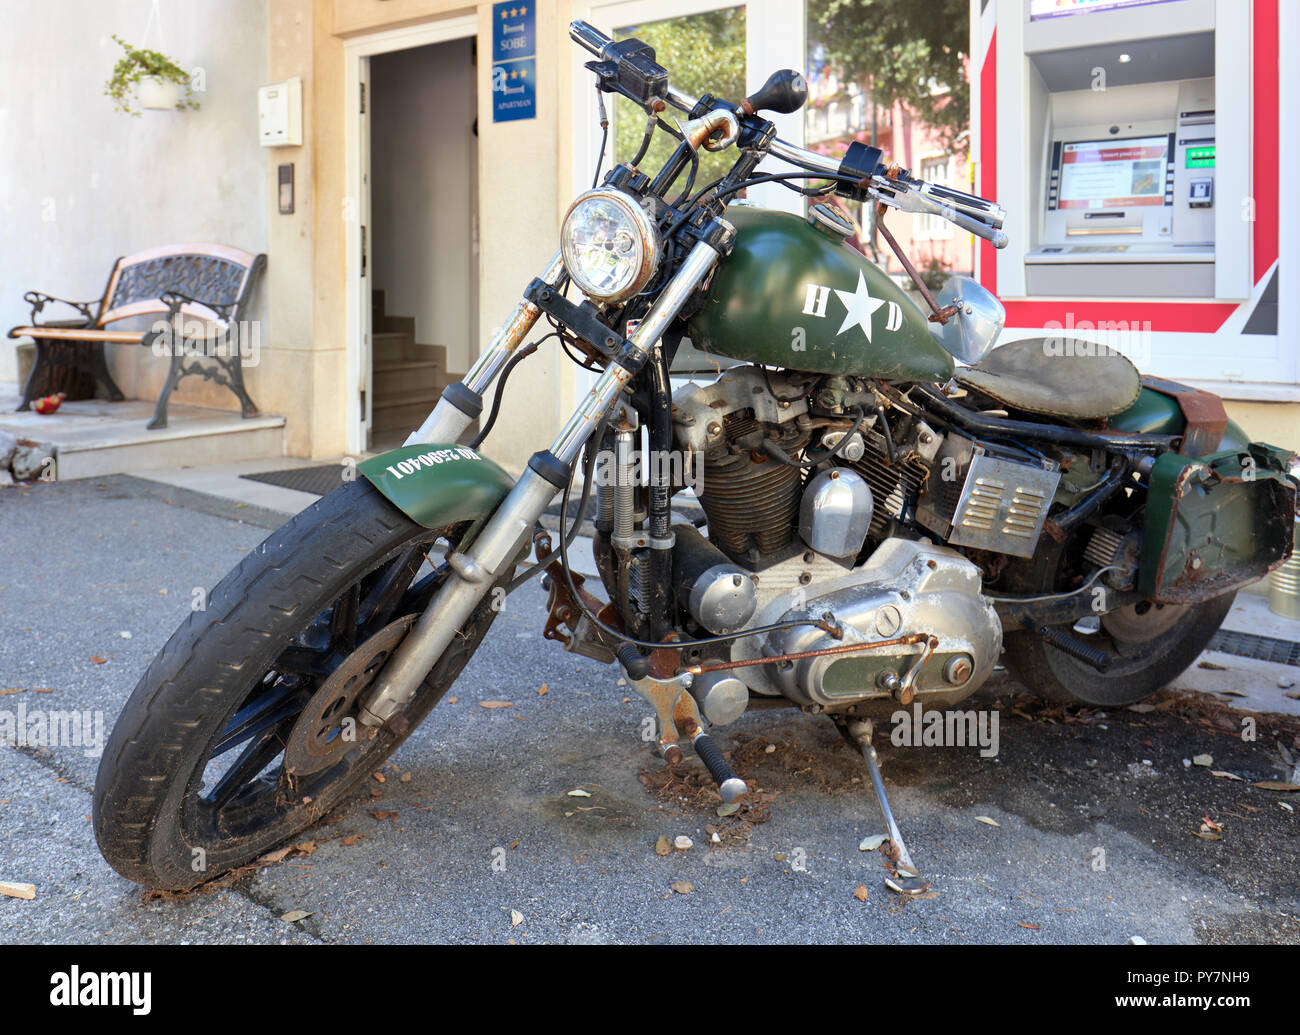 Old US military motorcycle in Moscenicka Draga, Istria, Croatia - Stock Image